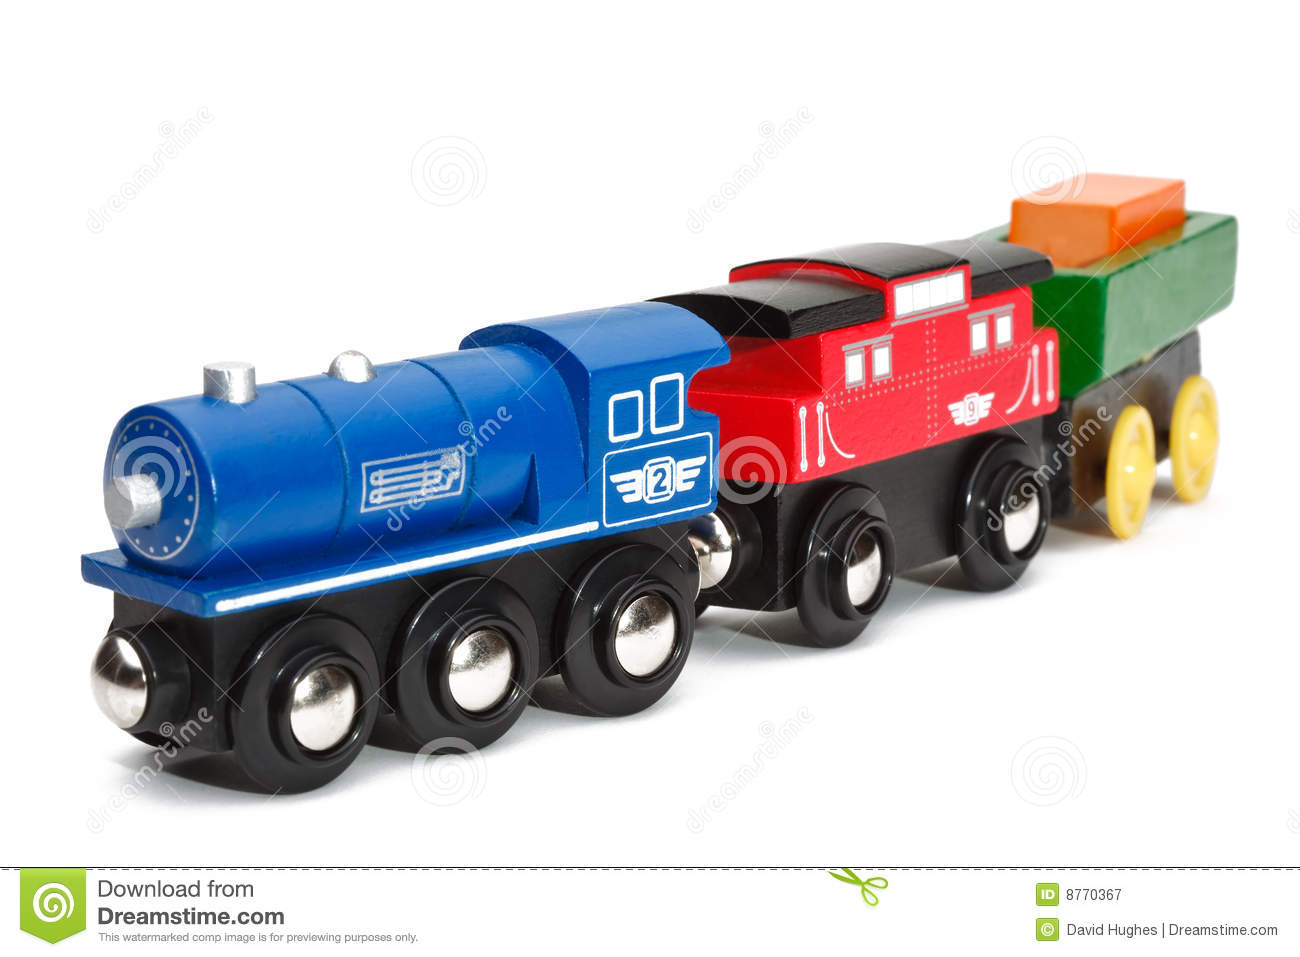 Wooden toy train on isolated white background.